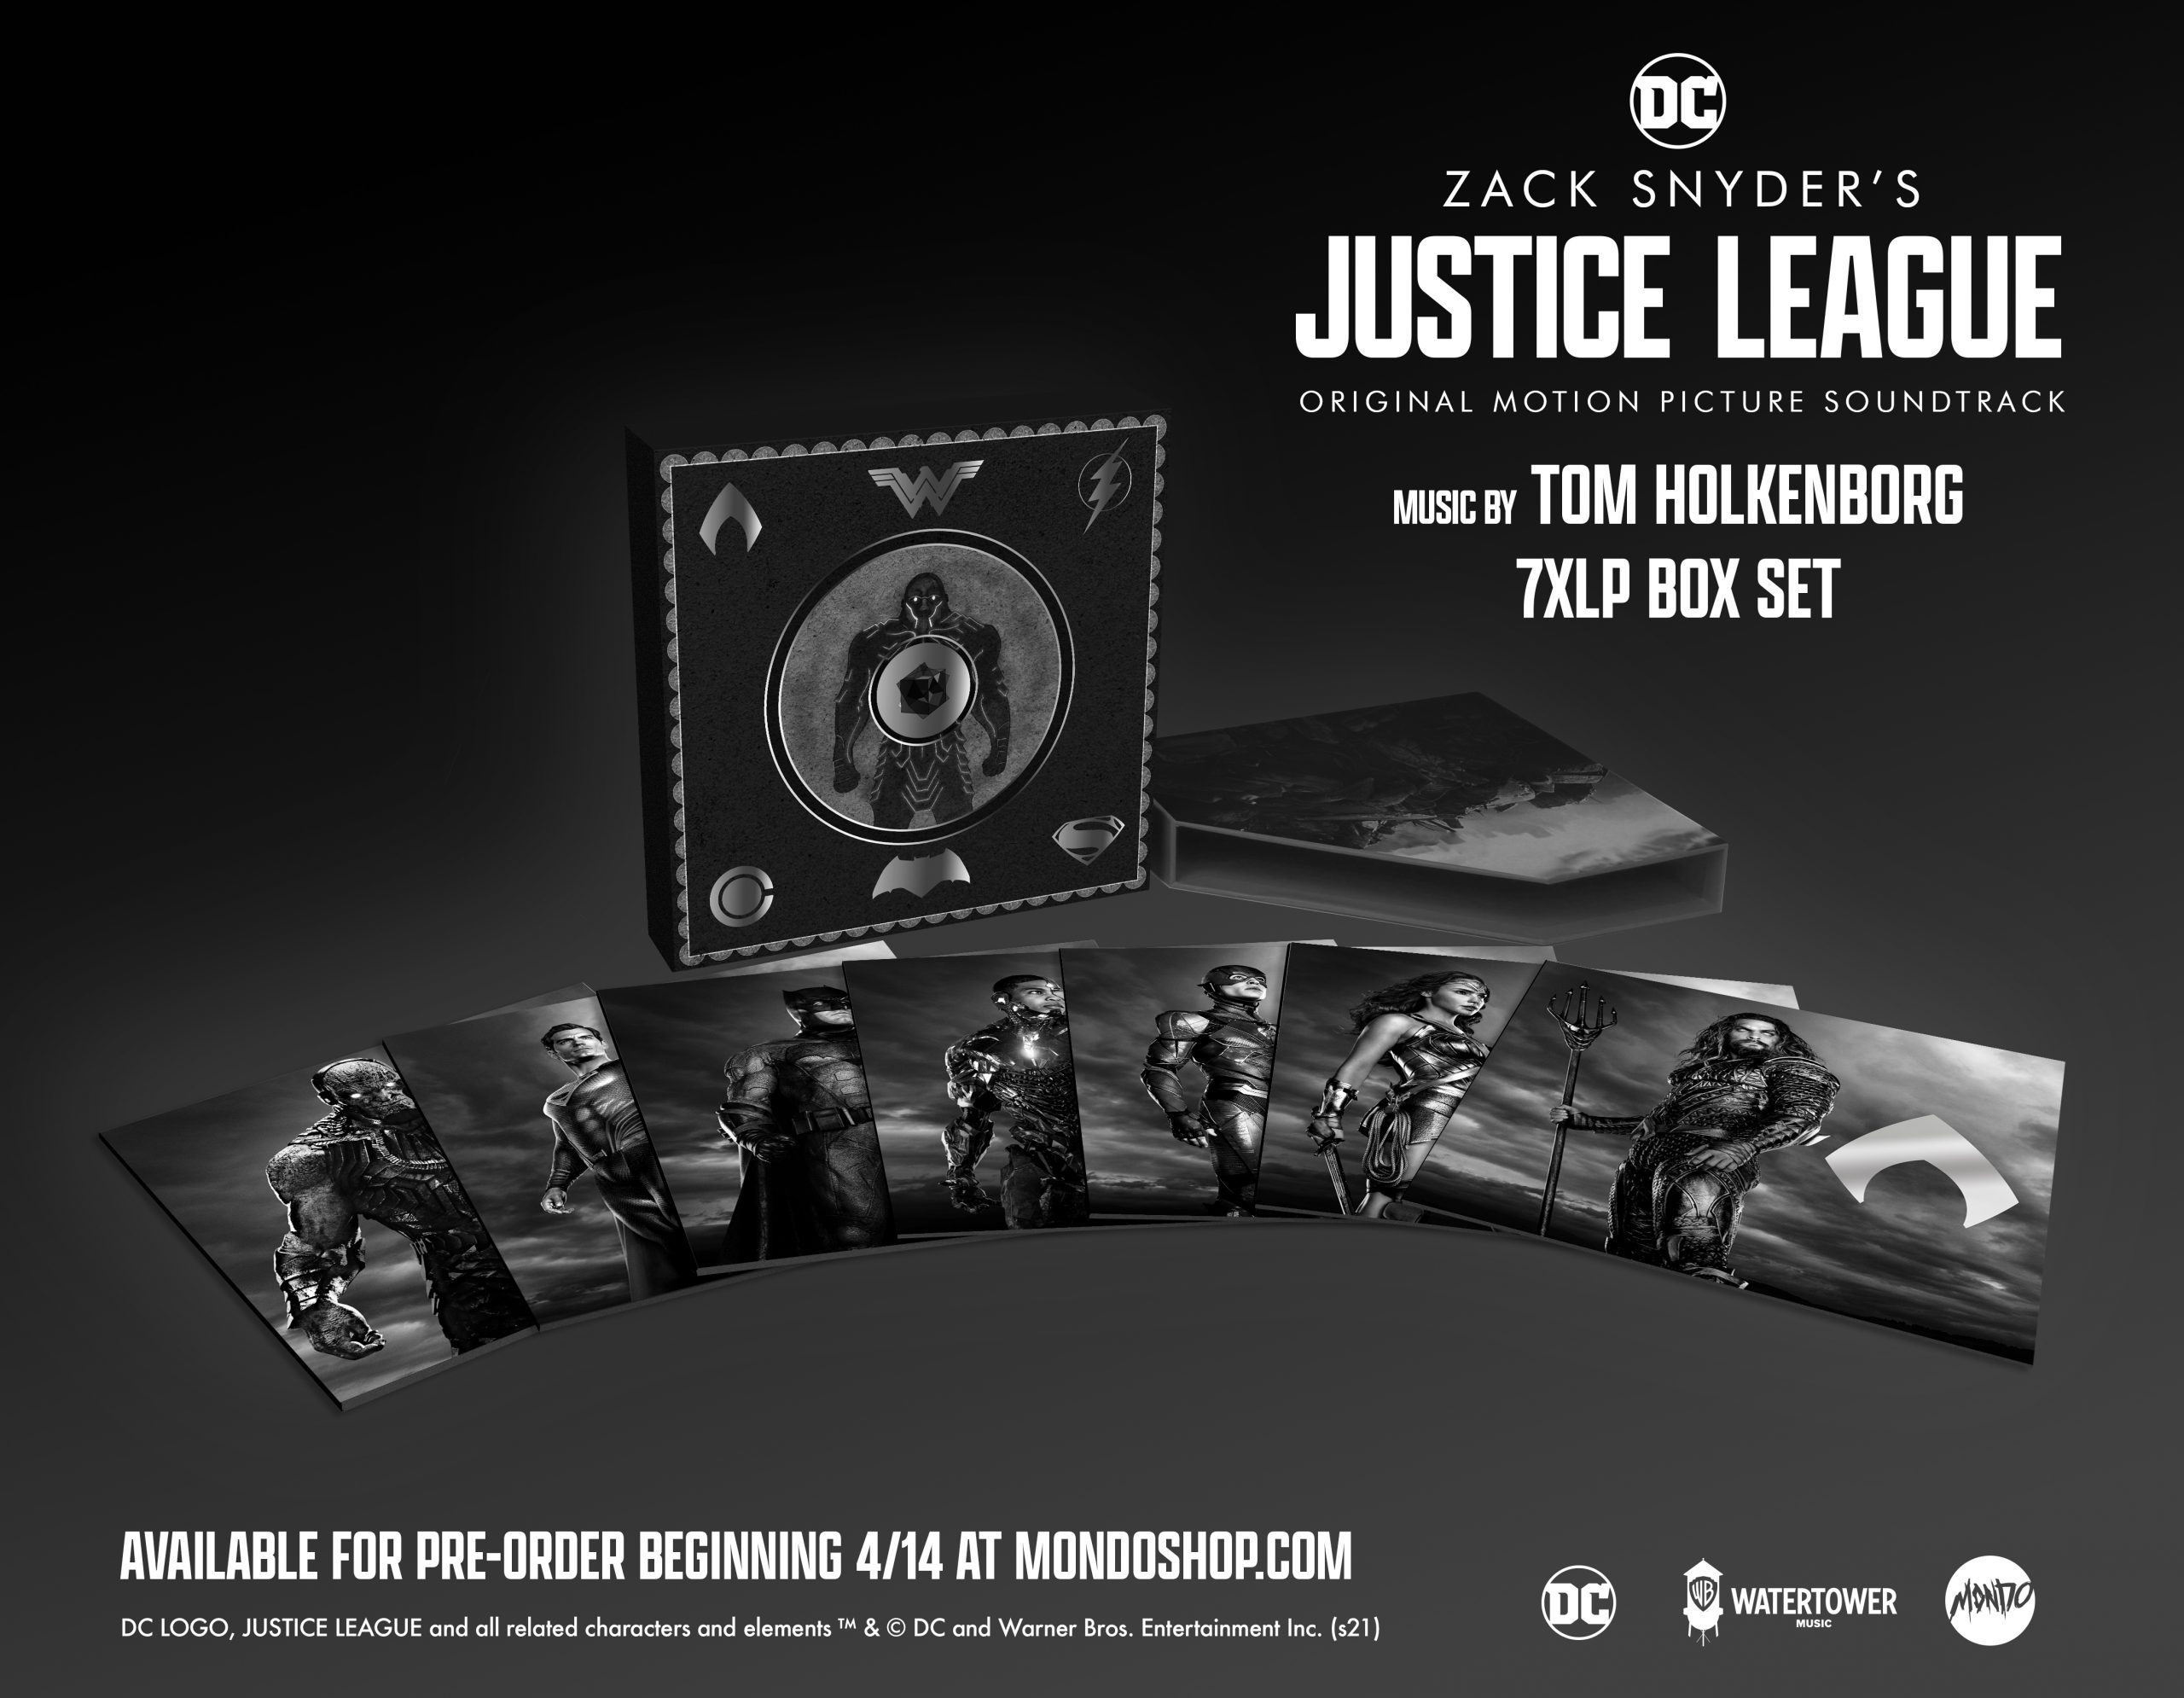 Mondo Releases a Super-Sized Soundtrack Box Set for ZACK SNYDER'S JUSTICE LEAGUE (USA / 14 April)